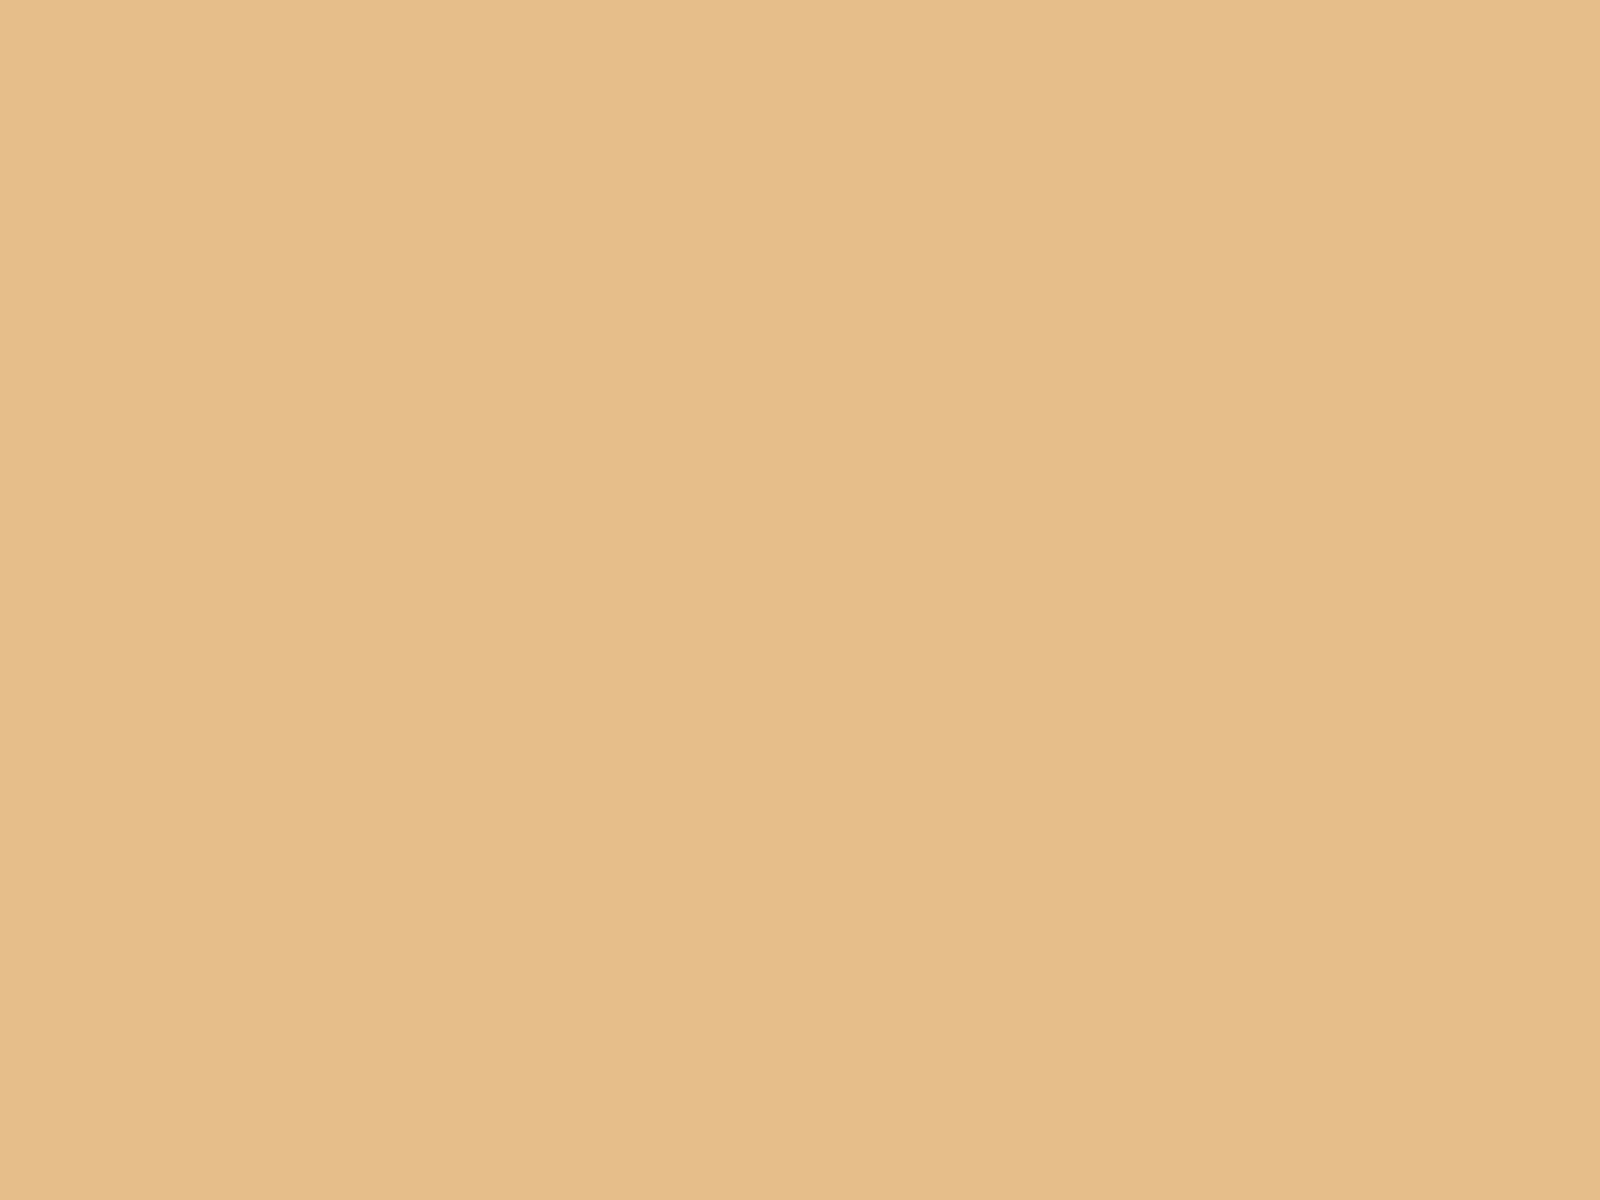 1600x1200 Pale Gold Solid Color Background